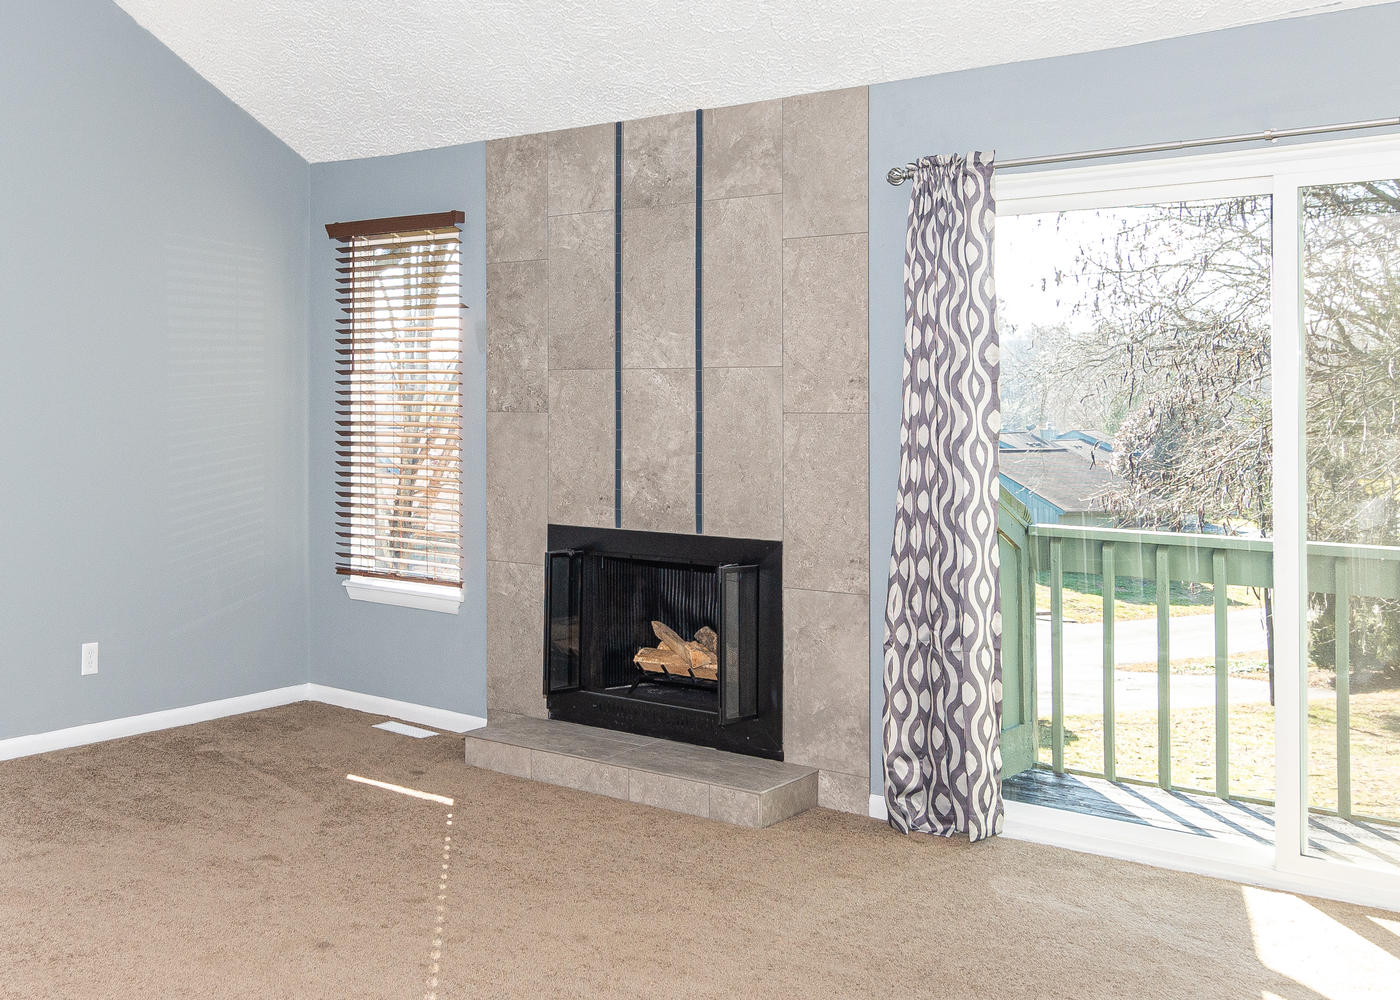 662 Blossom Dr Avon IN 46123-large-007-004-Fireplace-1400x1000-72dpi.jpg